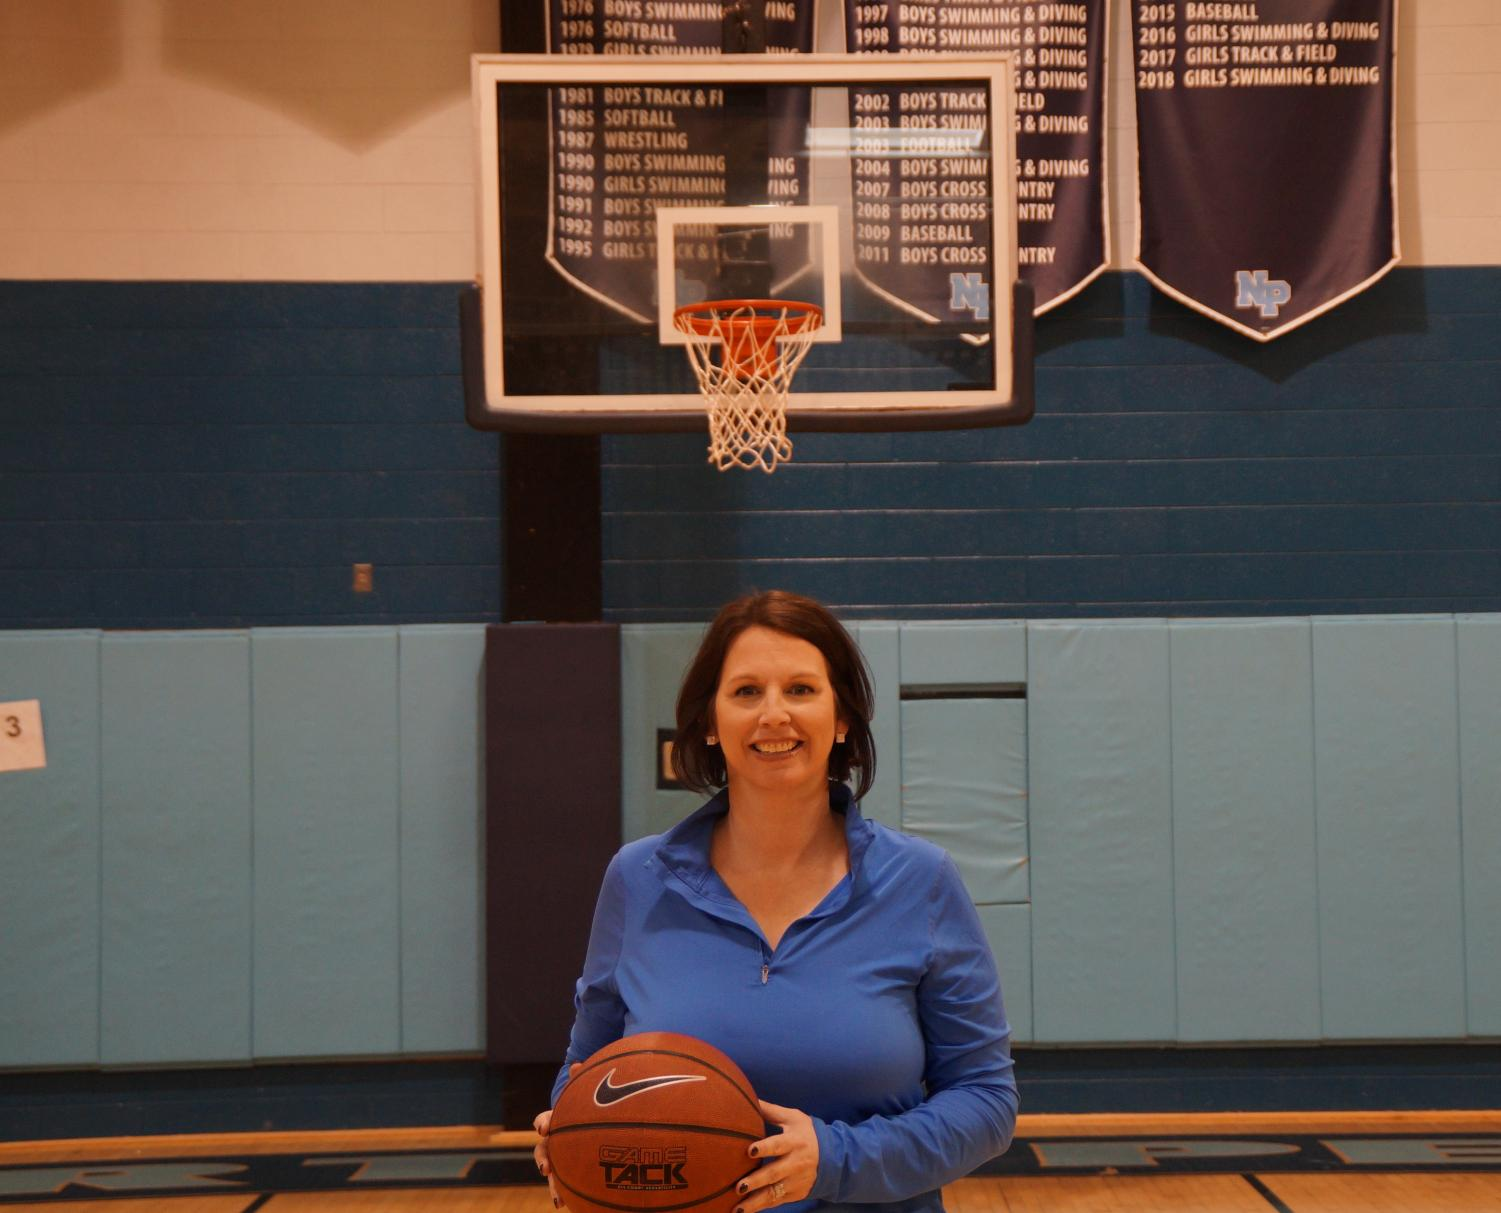 Coach Carangi took over as the girls basketball head coach and led the team back to the playoffs.